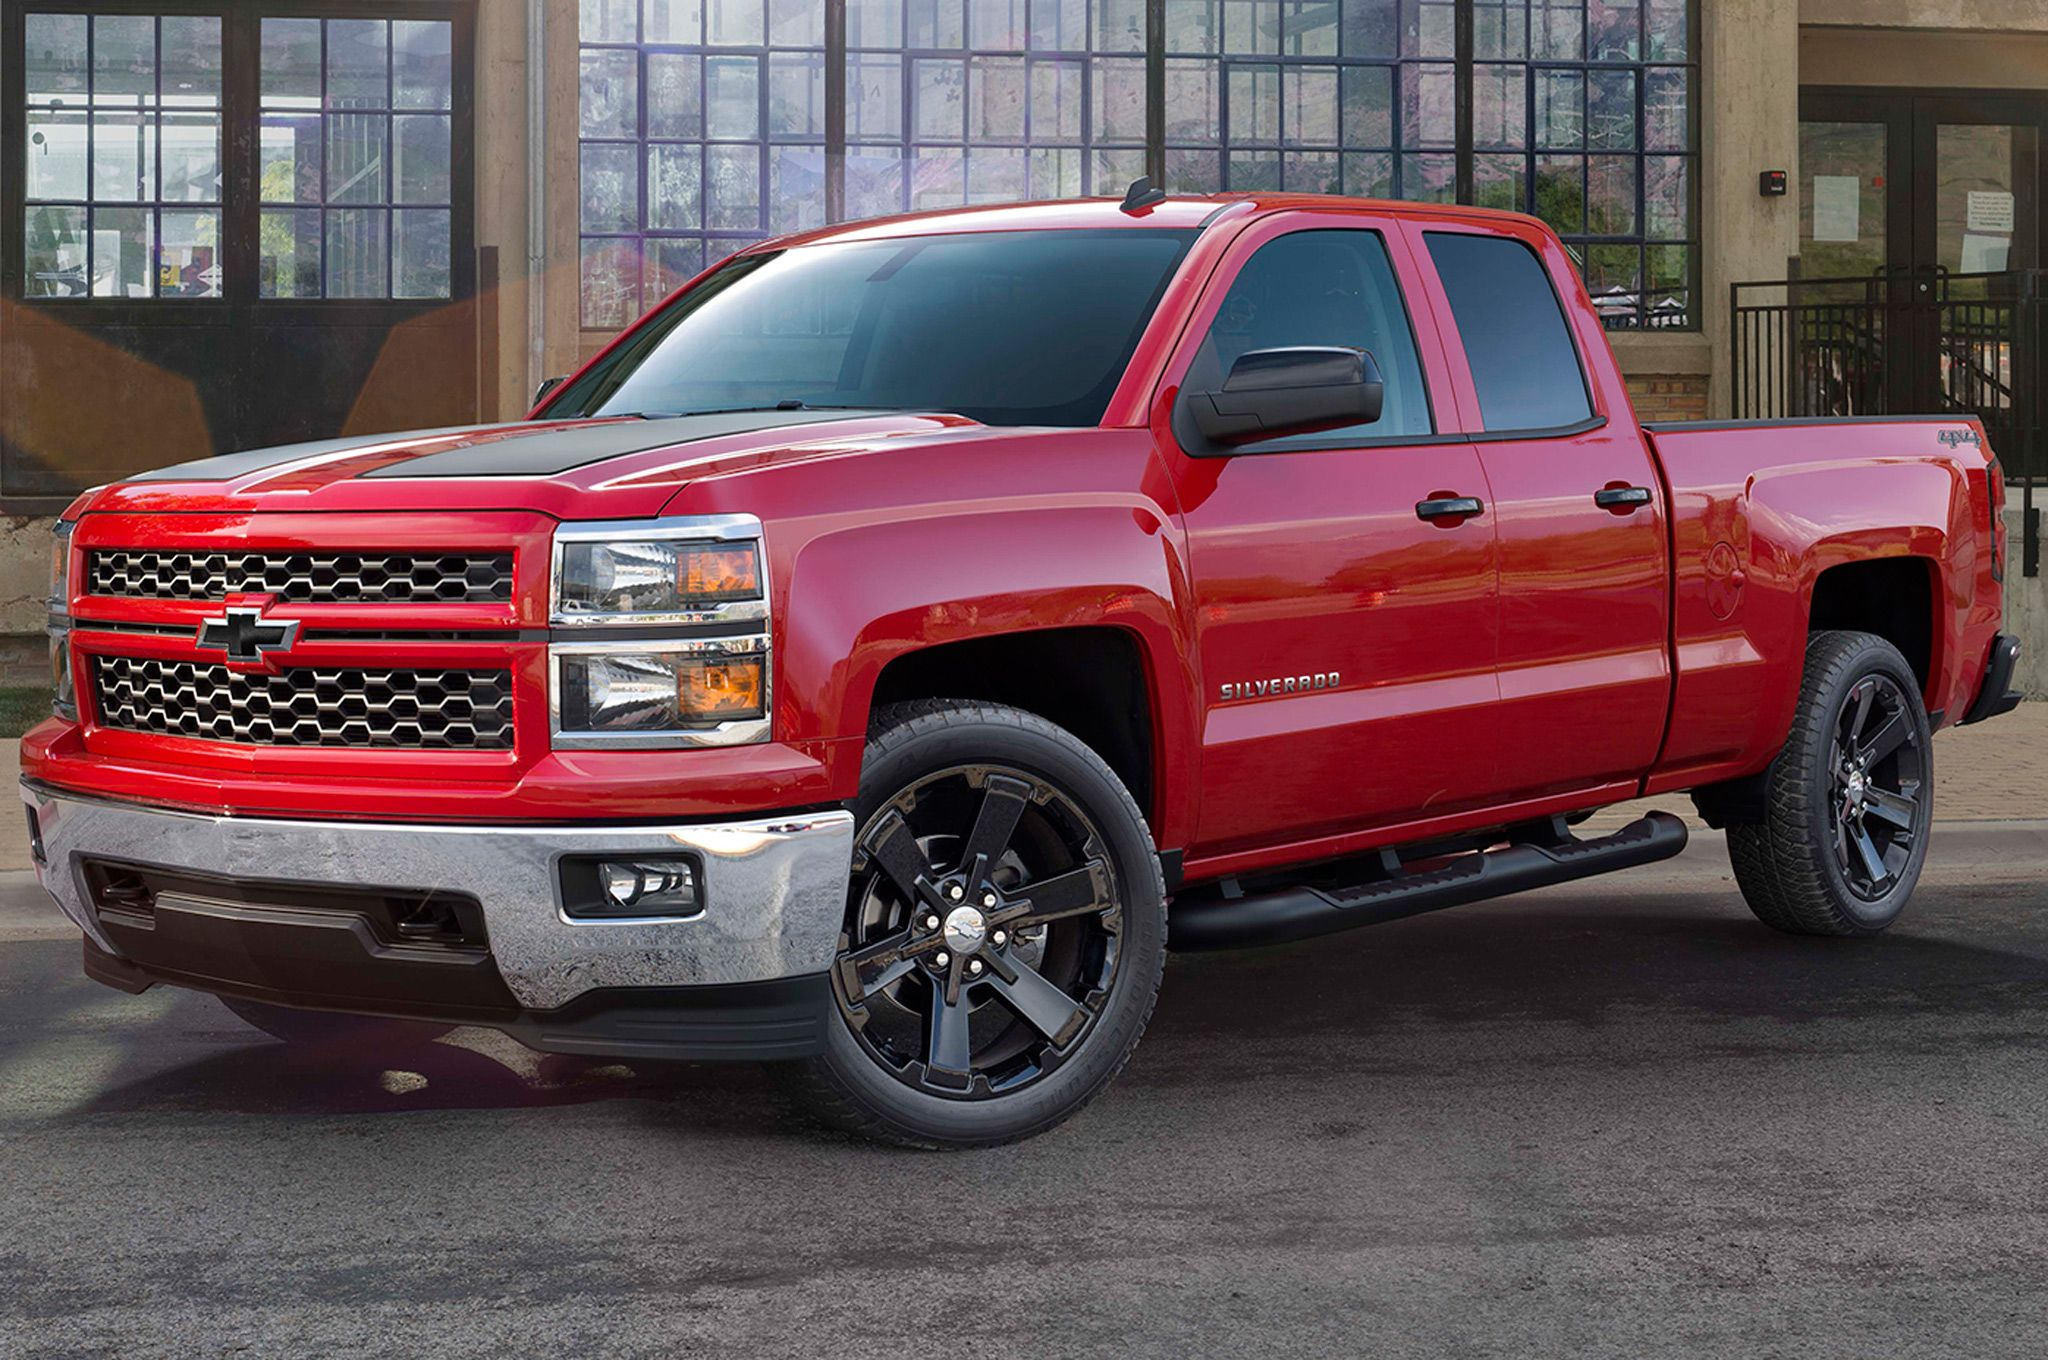 New Silverado Work Truck Features At Chevrolet Dealership